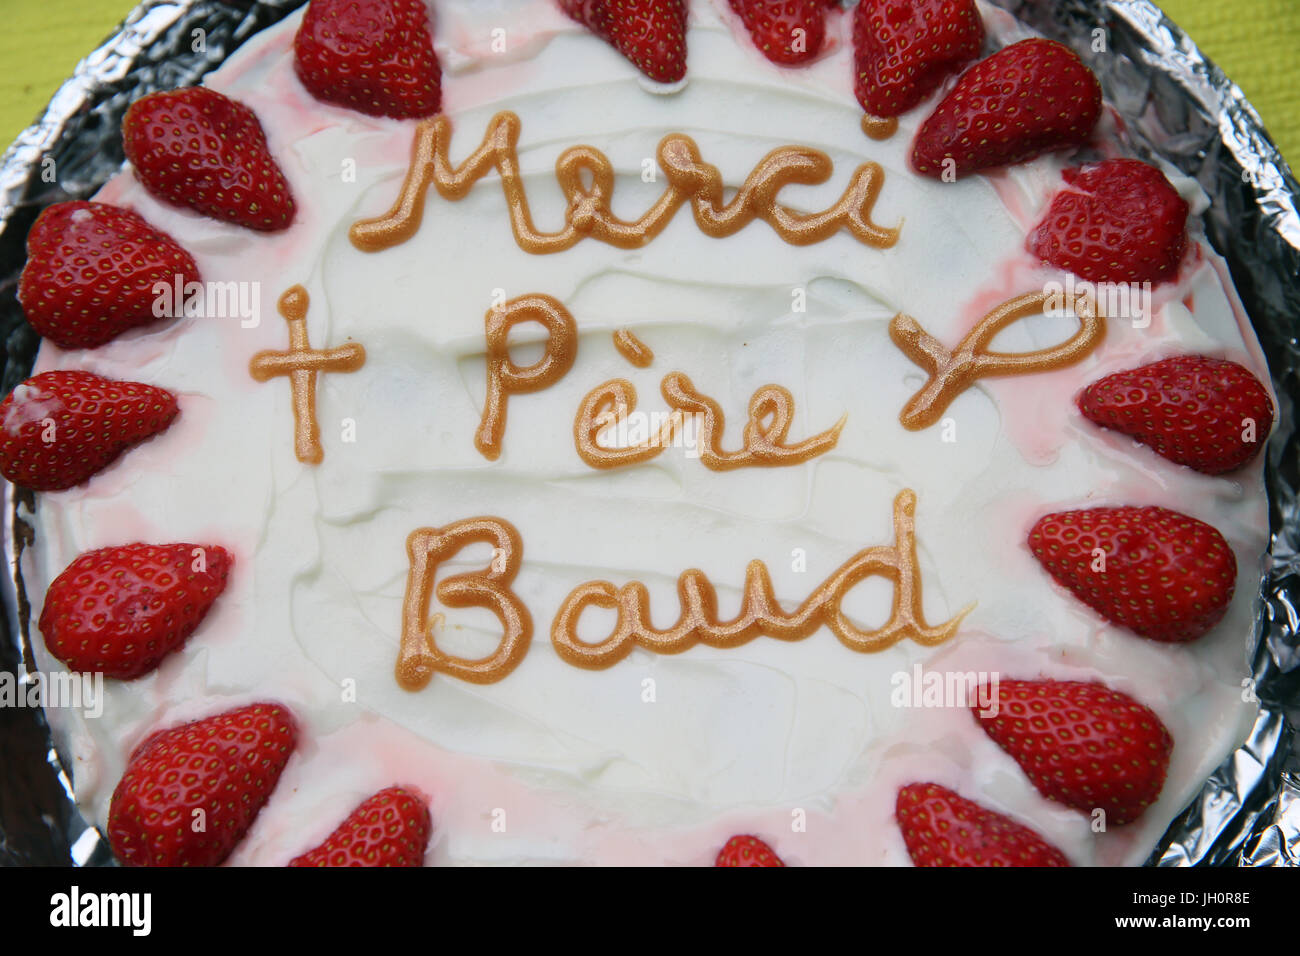 Home made cake. Thank you father Baud.  France. - Stock Image